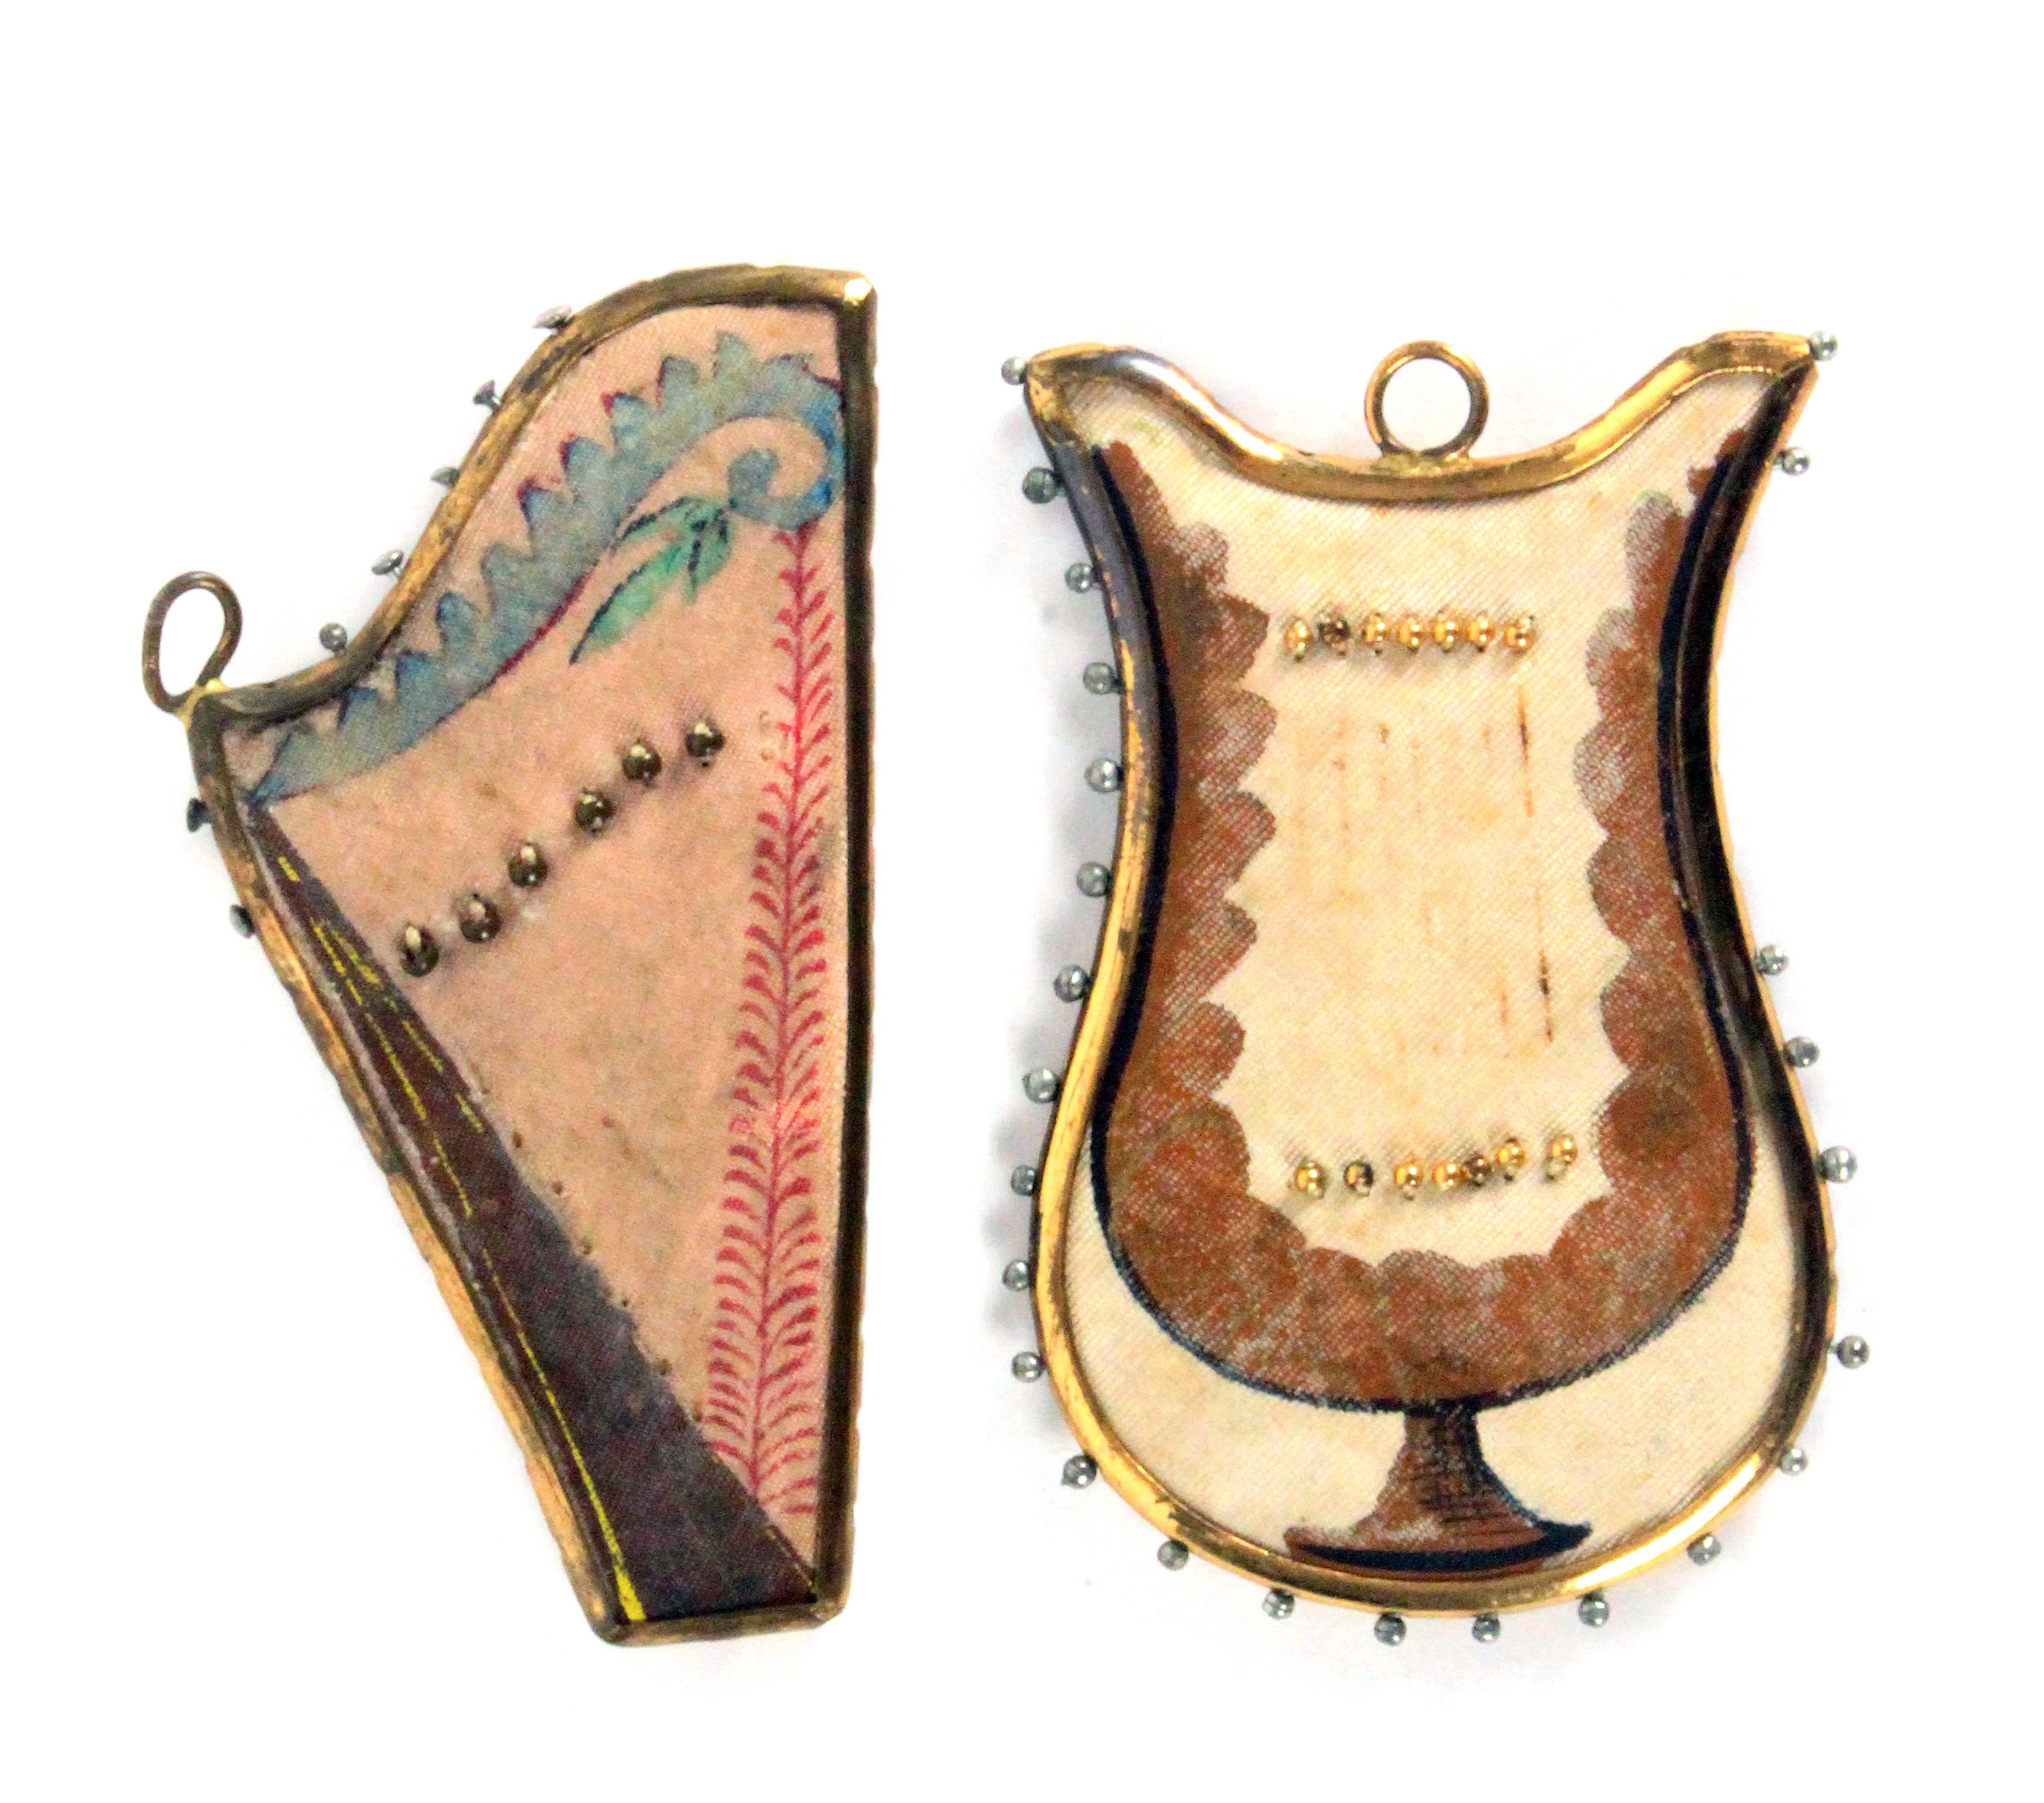 Two scarce metal frame early 19th Century pin retainers modelled as a harp and a lyre, each with